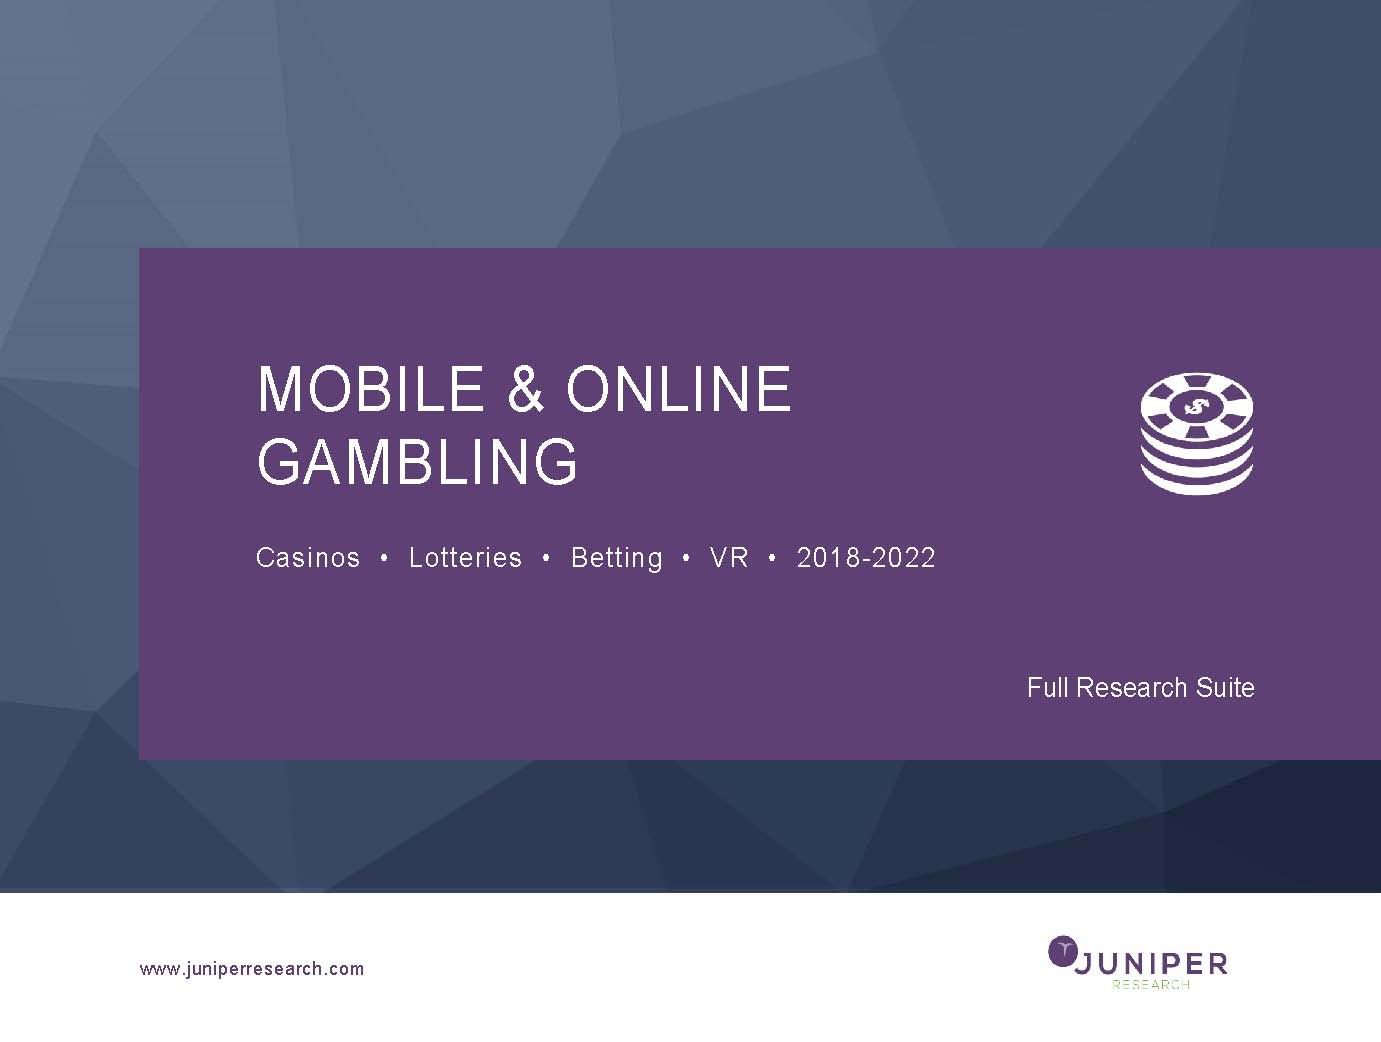 Mobile & Online Gambling: Casinos, Lotteries, Betting & VR 2018-2022